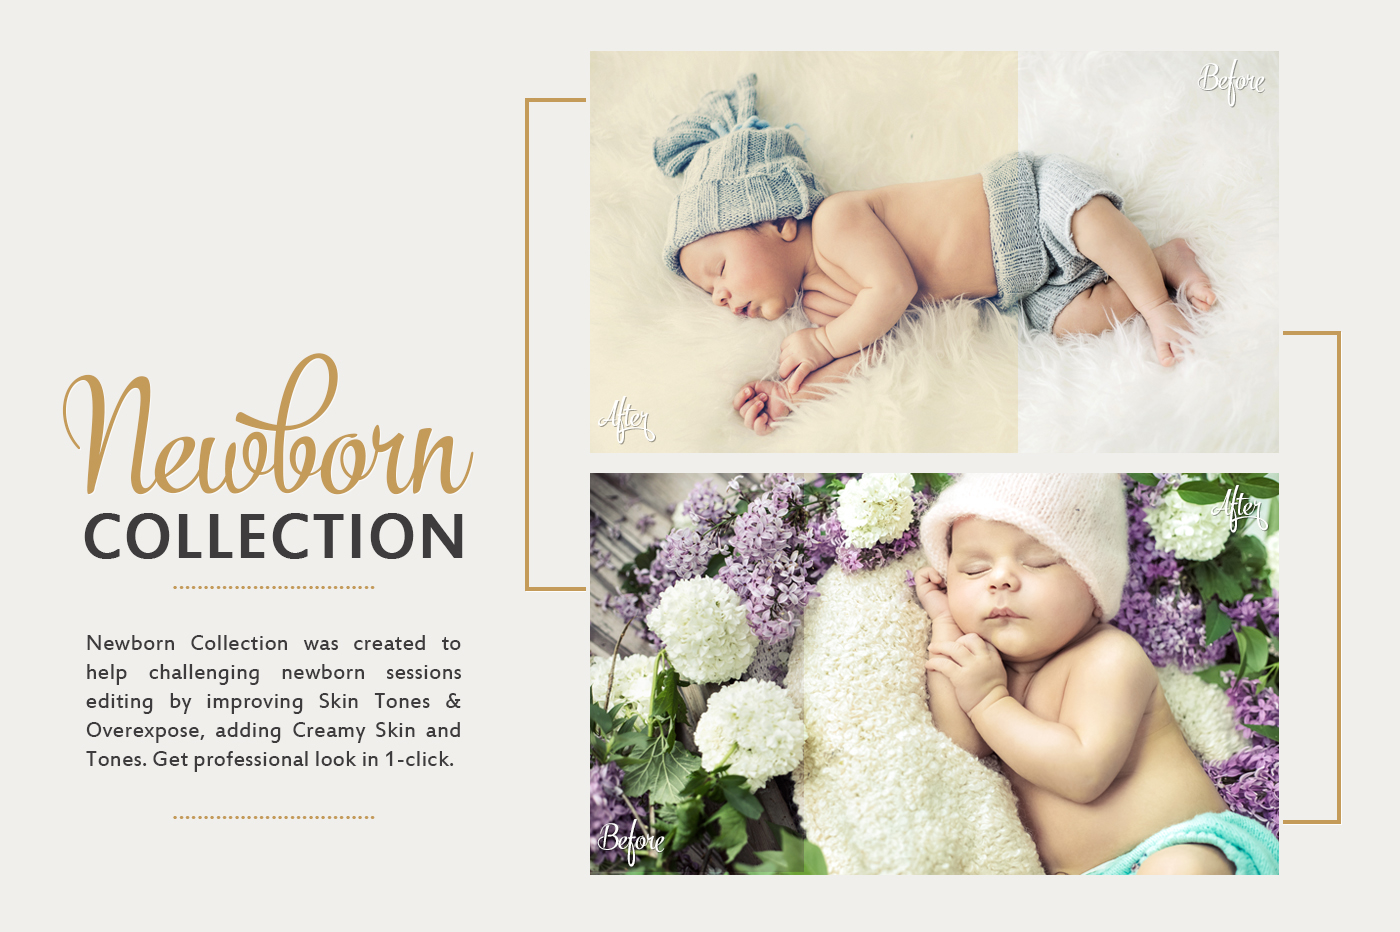 Before & after-Newborn-Lightroom-Presets-by-BeArt-presets (1).jpg